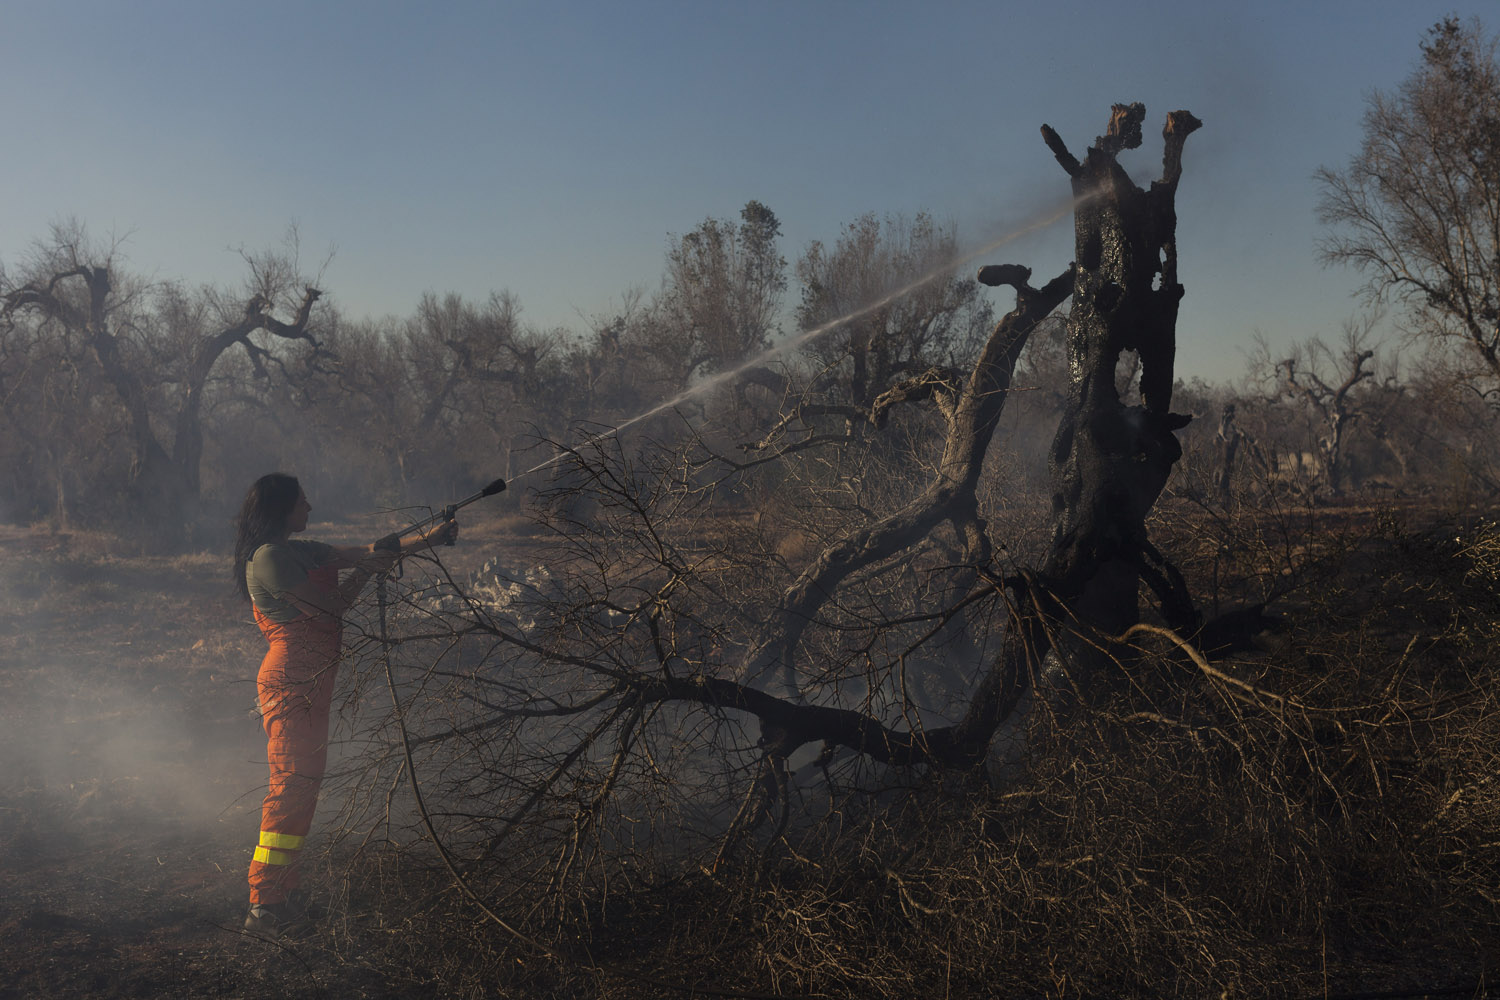 It can take thousands of litres of water to extinguish a burning olive tree, an effort that seems somewhat pointless considering that the trees are already dead. As a result, the fire brigade and the civil protection volunteers limit themselves to making sure the fires don't spread to the neighbouring fields, and leave the olive trees to burn and crumble into ashes.